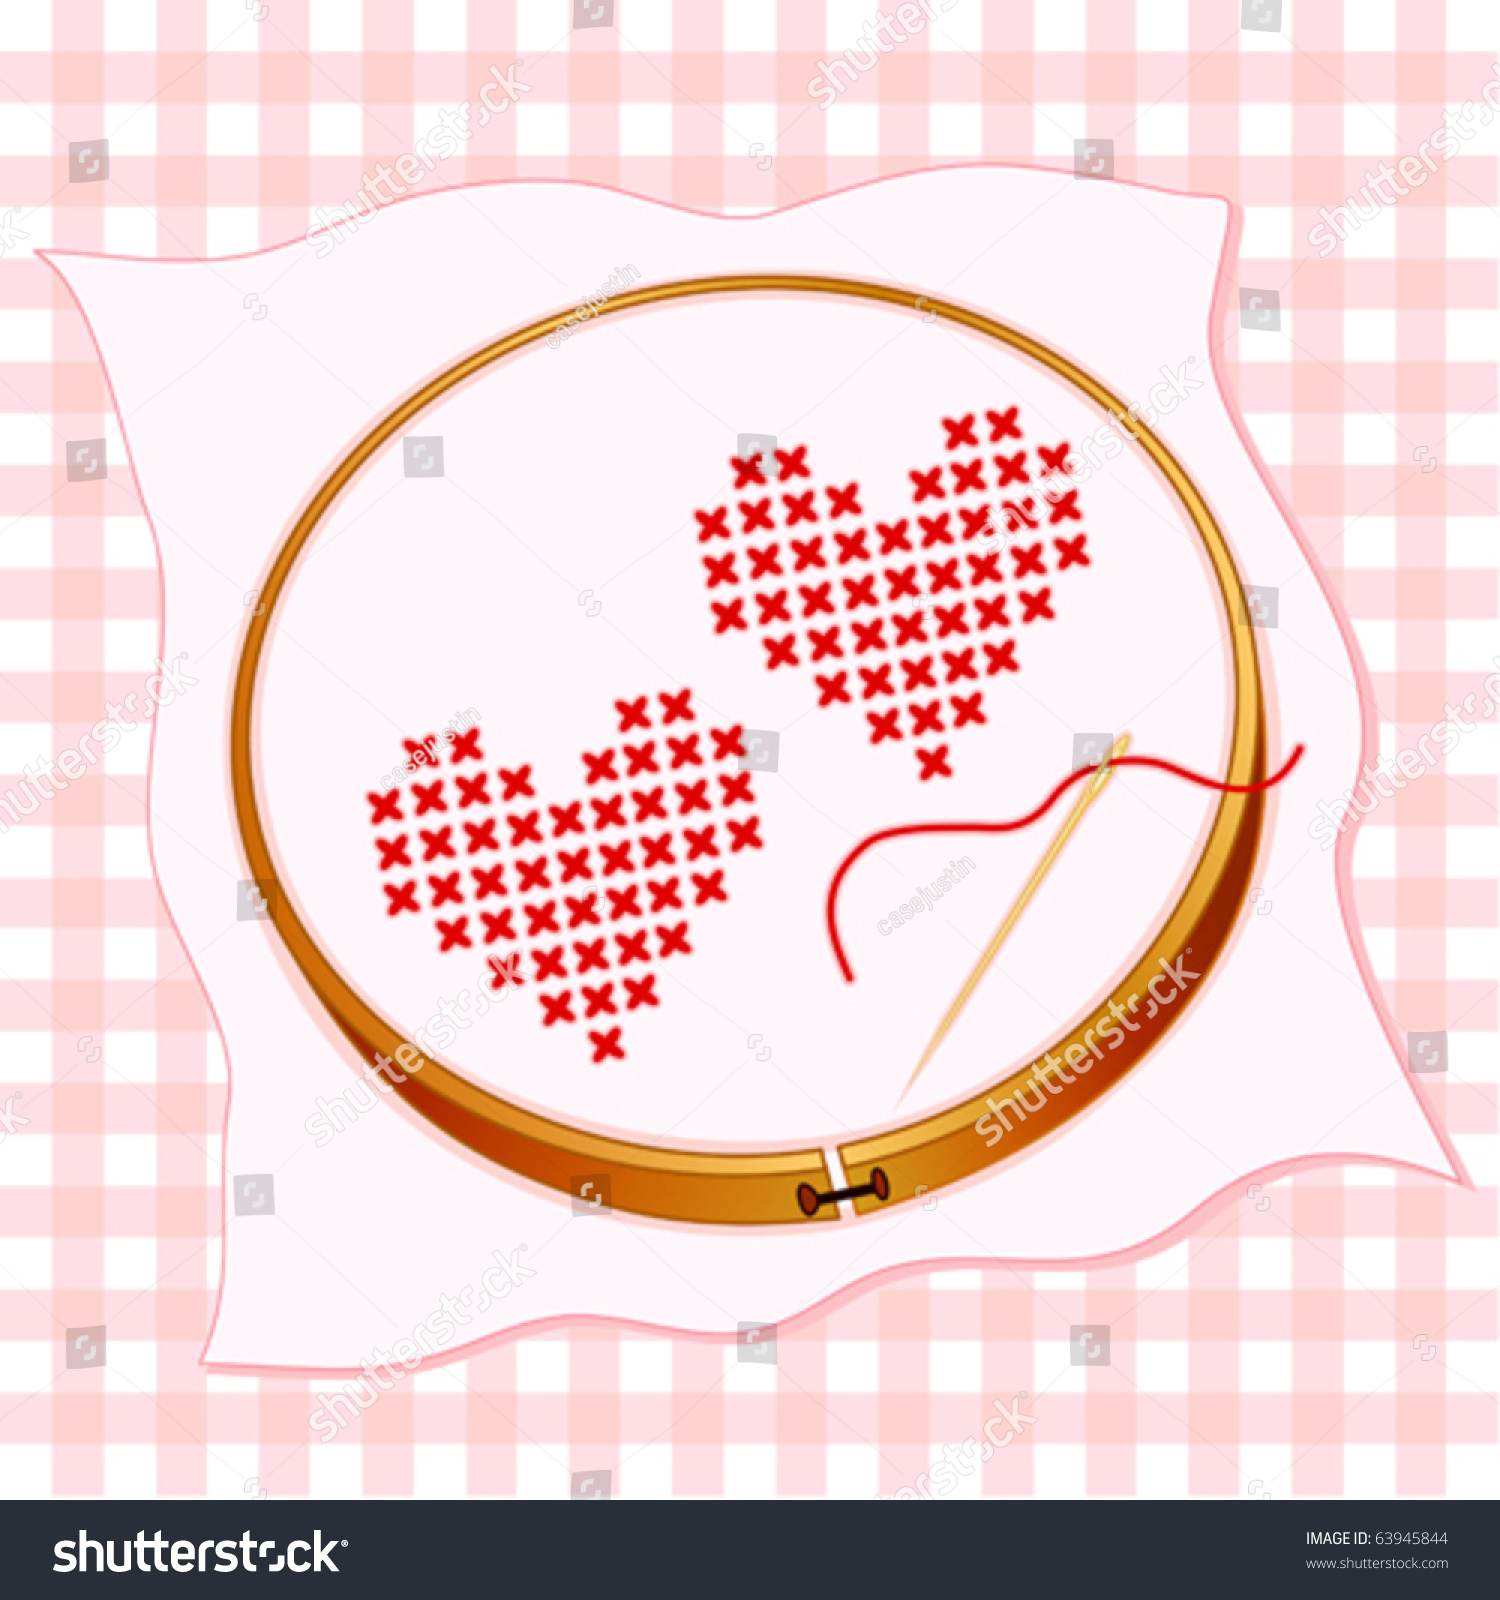 Embroidery two valentine hearts in traditional cross